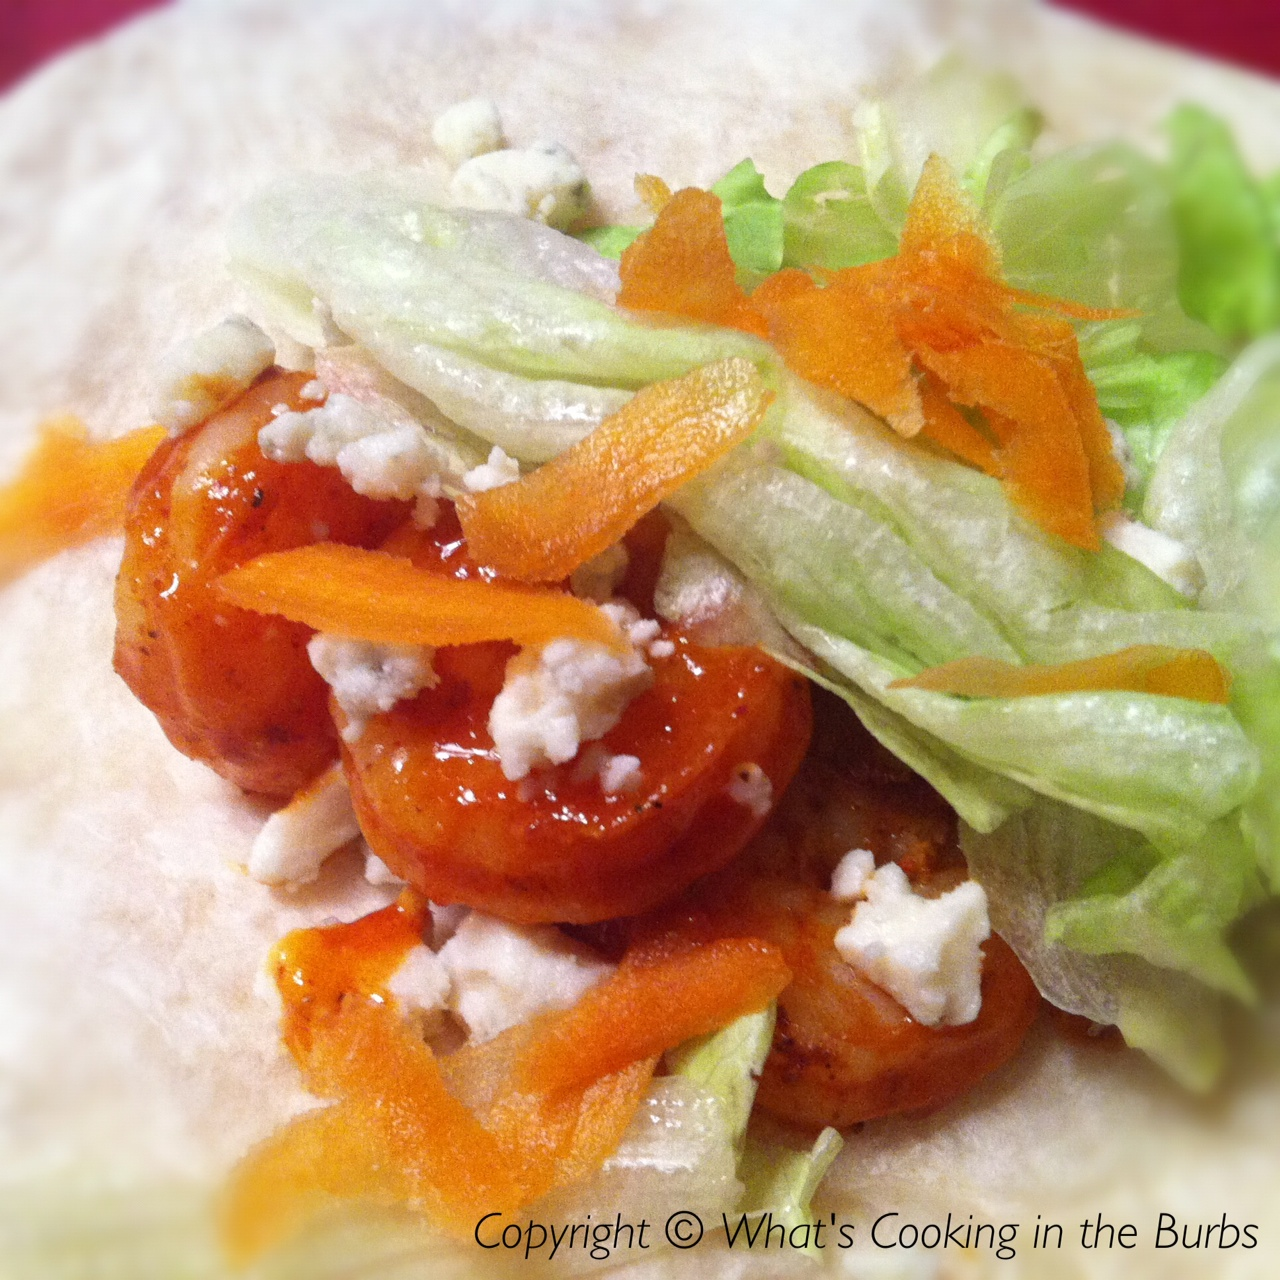 What's Cooking in the Burbs: Buffalo Shrimp Tacos